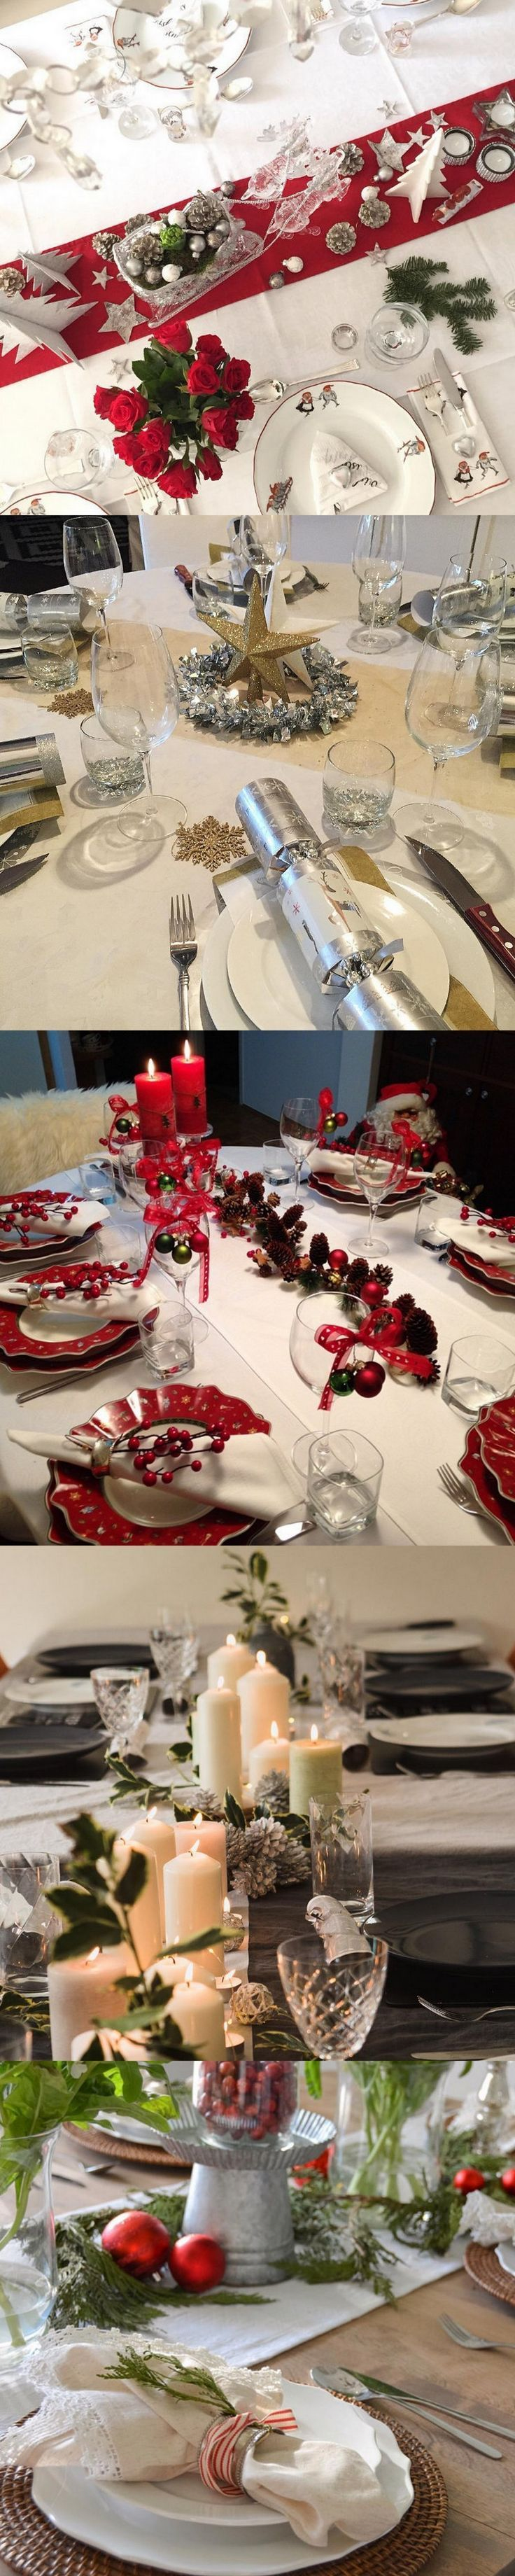 1260 Best Christmas Table Decorations Images On Pinterest